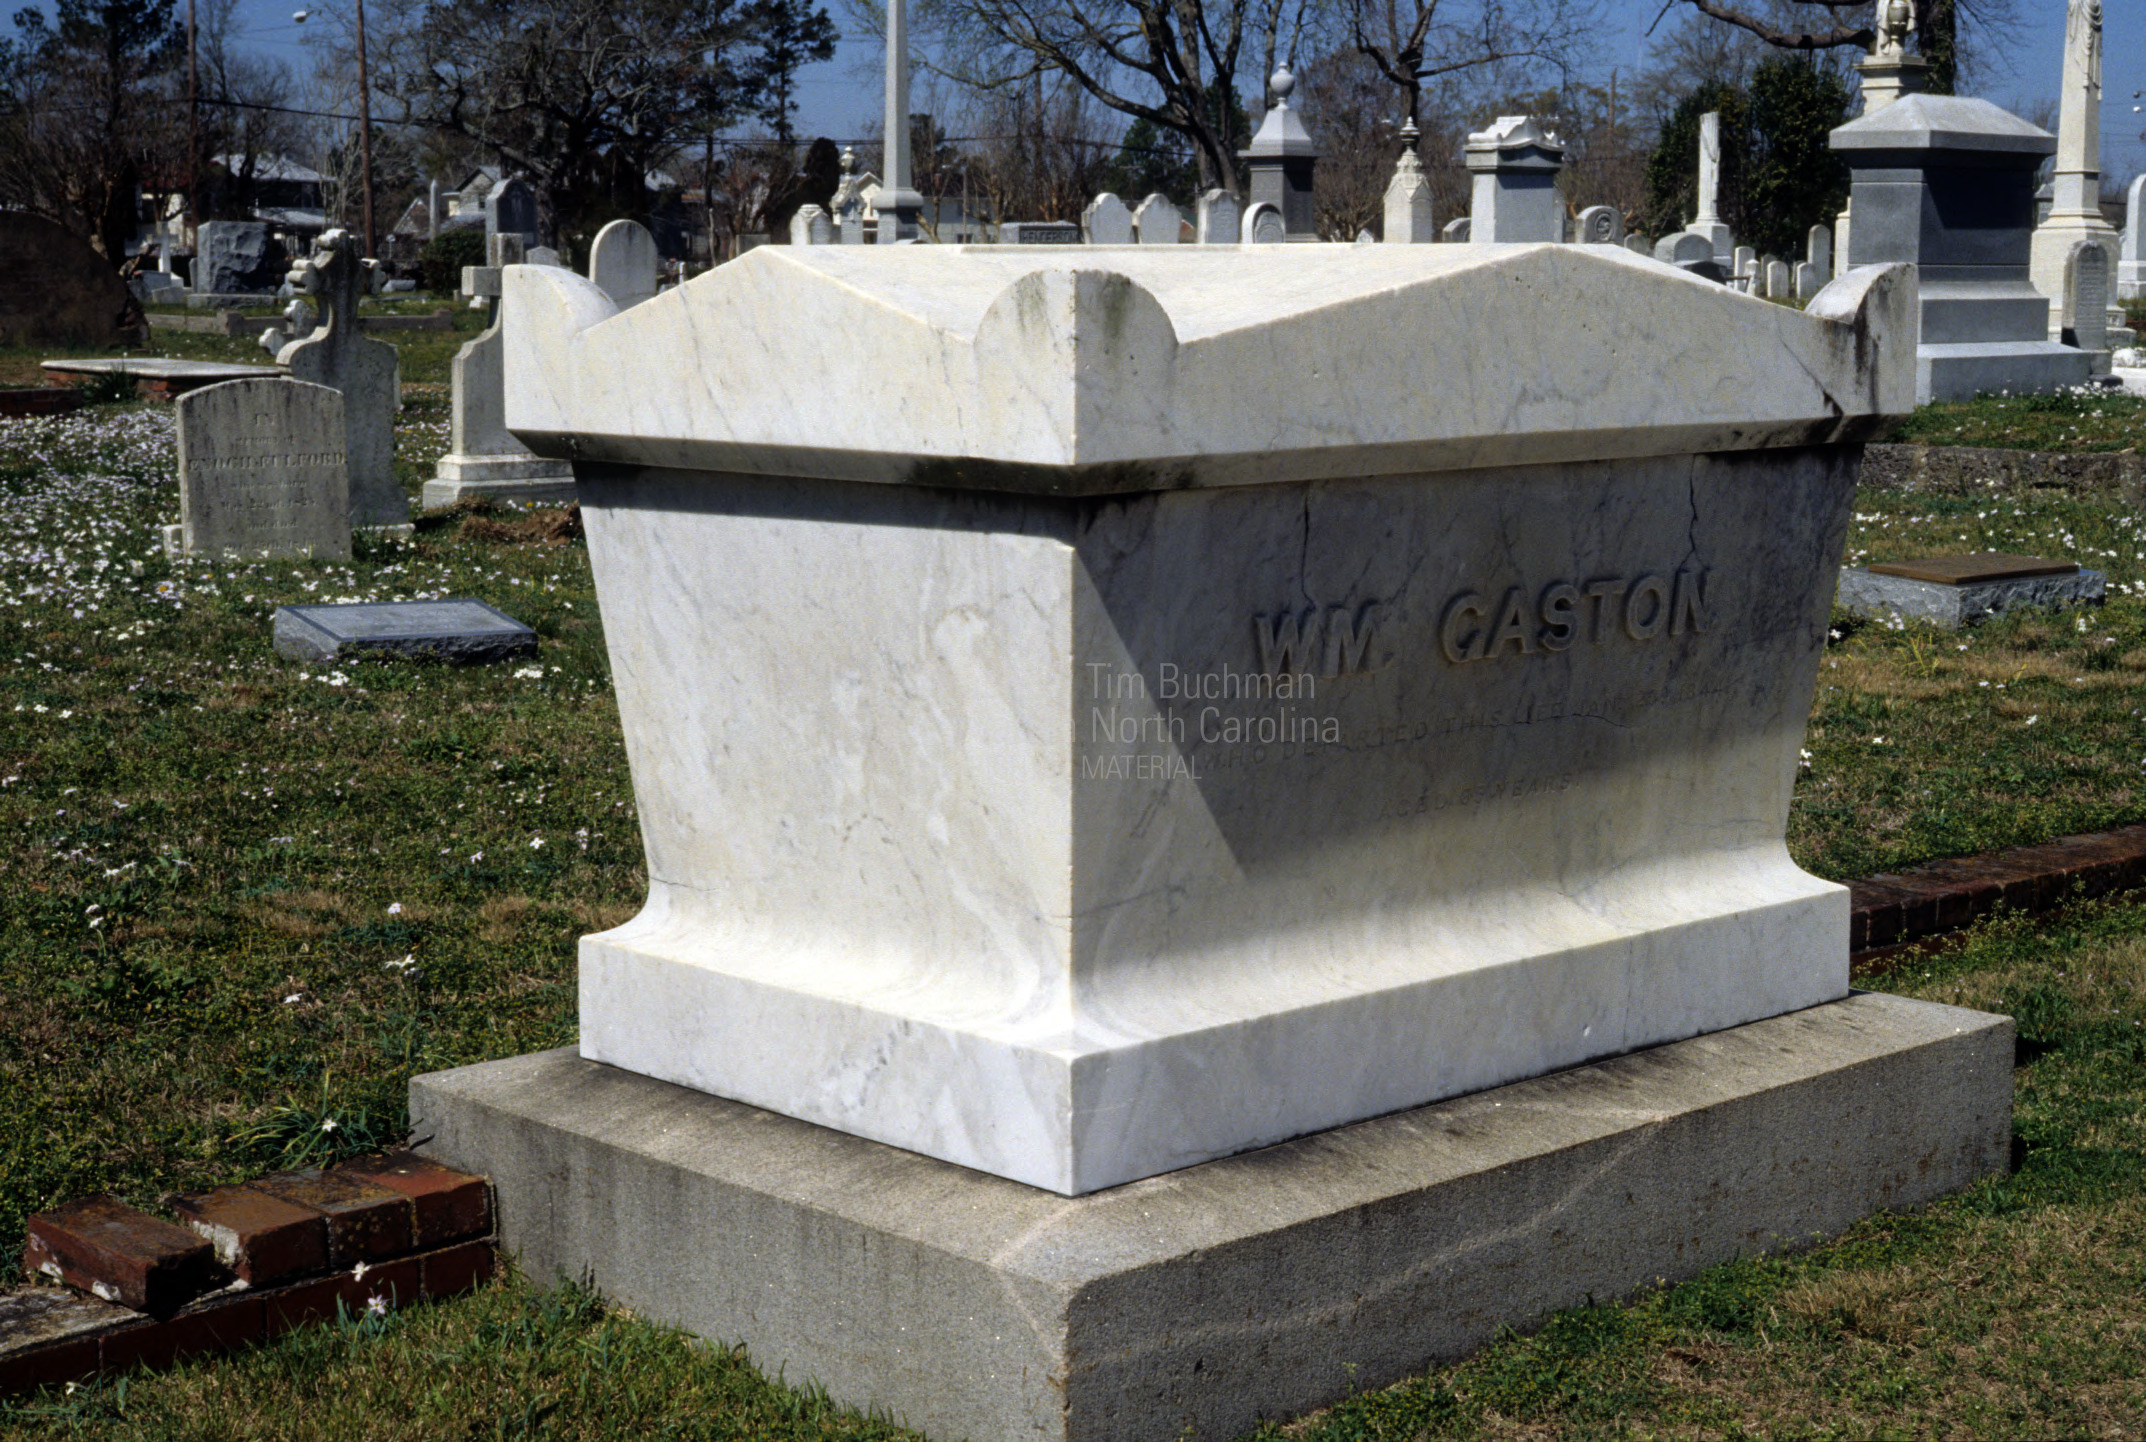 Grave of William Gaston, Cedar Grove Cemetery, New Bern, Craven County, North Carolina